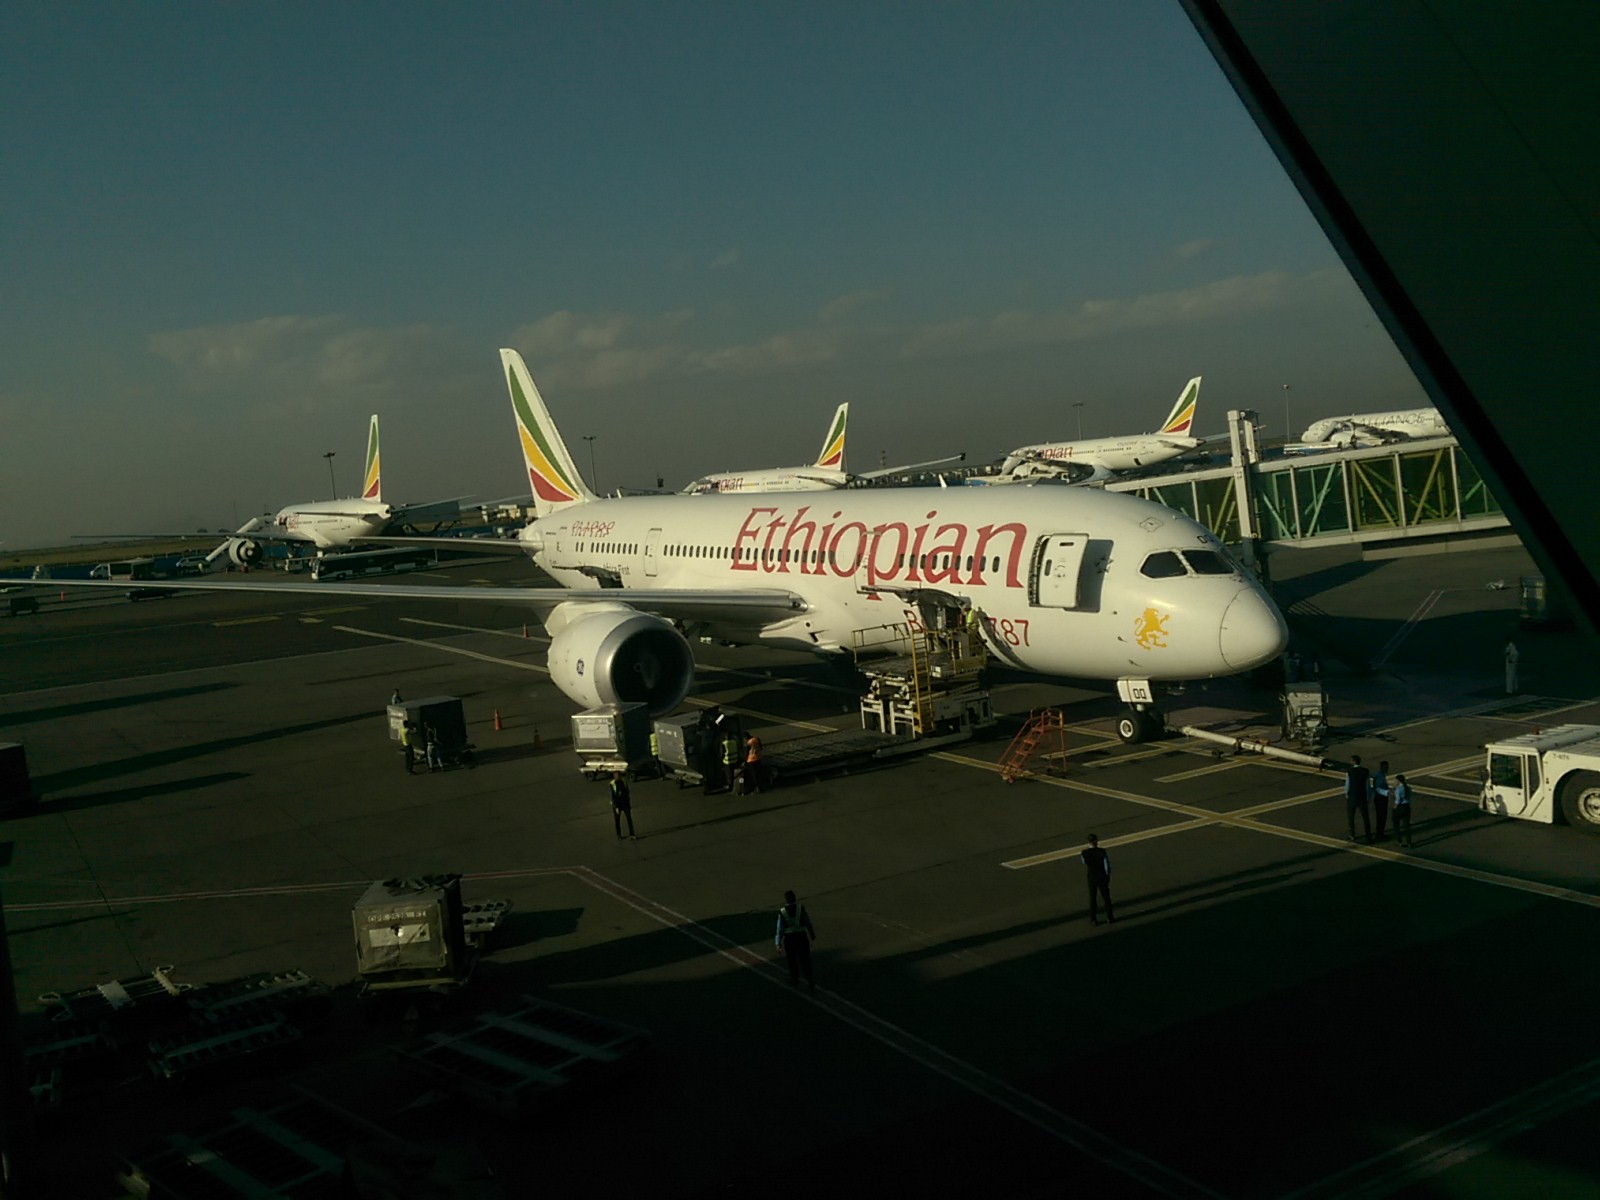 A white plane with Ethiopian written on the side in red letters on airport tarmac in front of a blue sky